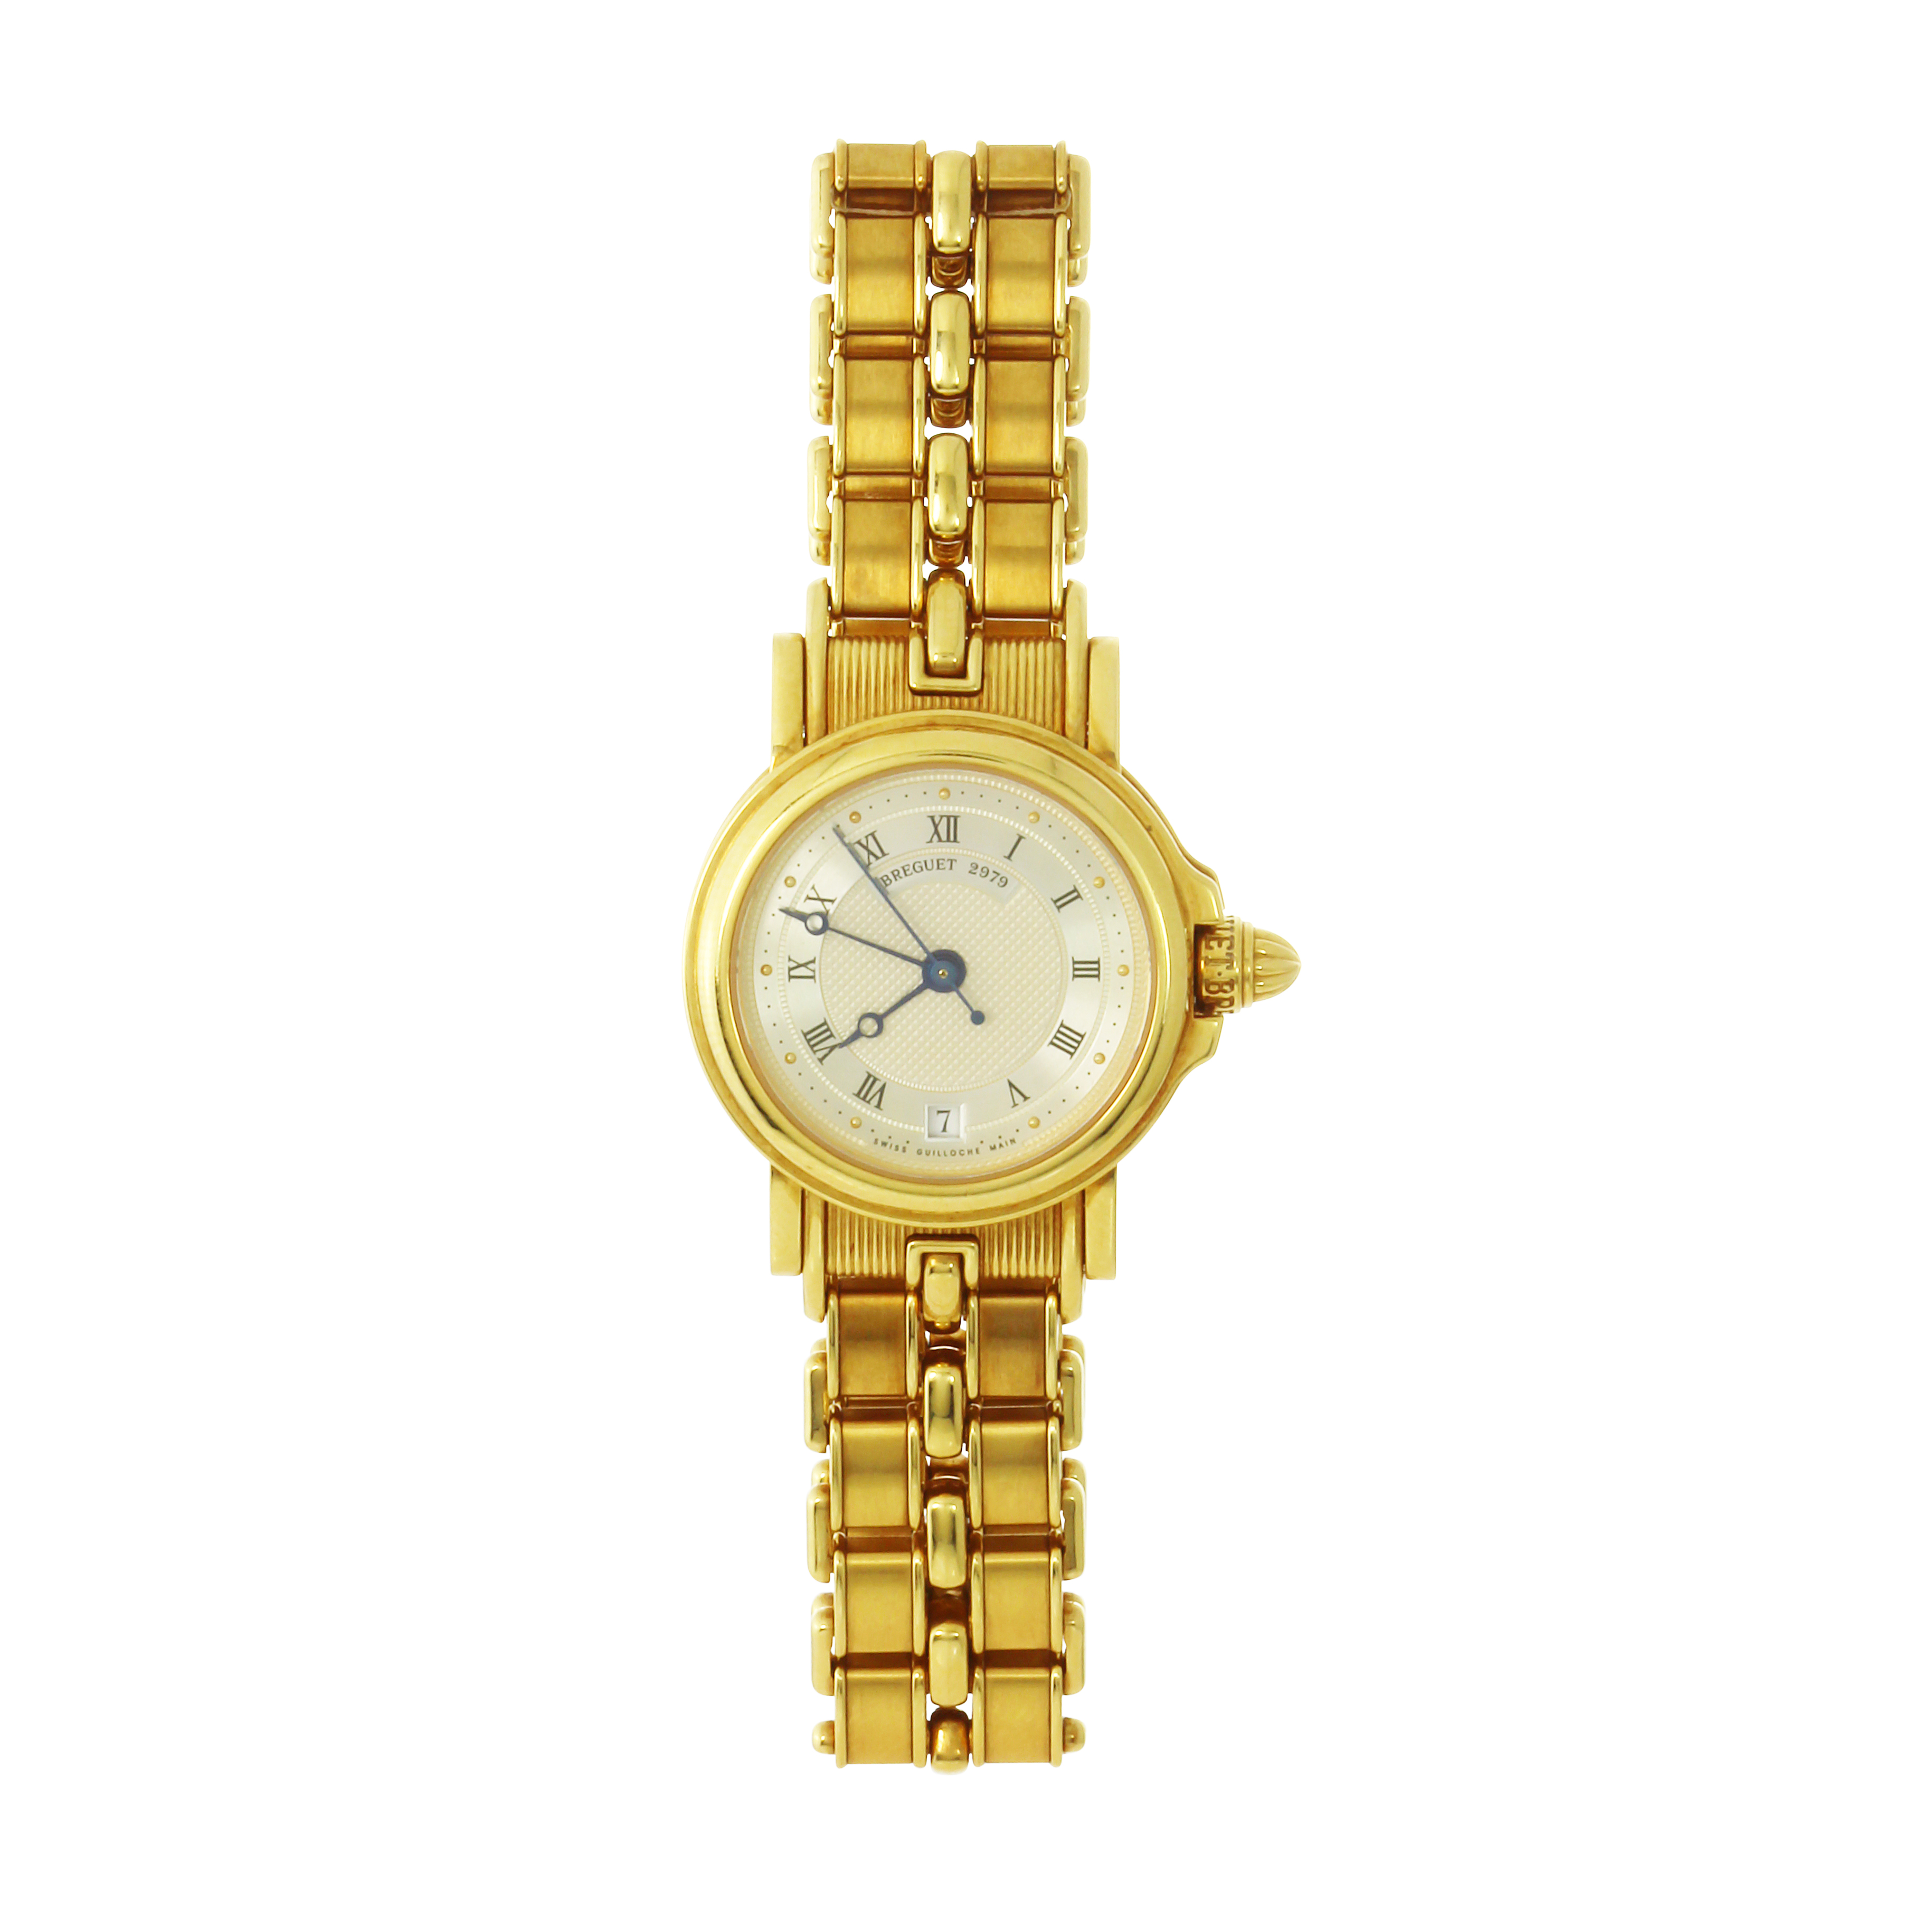 Los 20 - A MARINE 3400 LADIES GOLD WRISTWATCH BREGUET in 18ct yellow gold, the 26mm circular face with